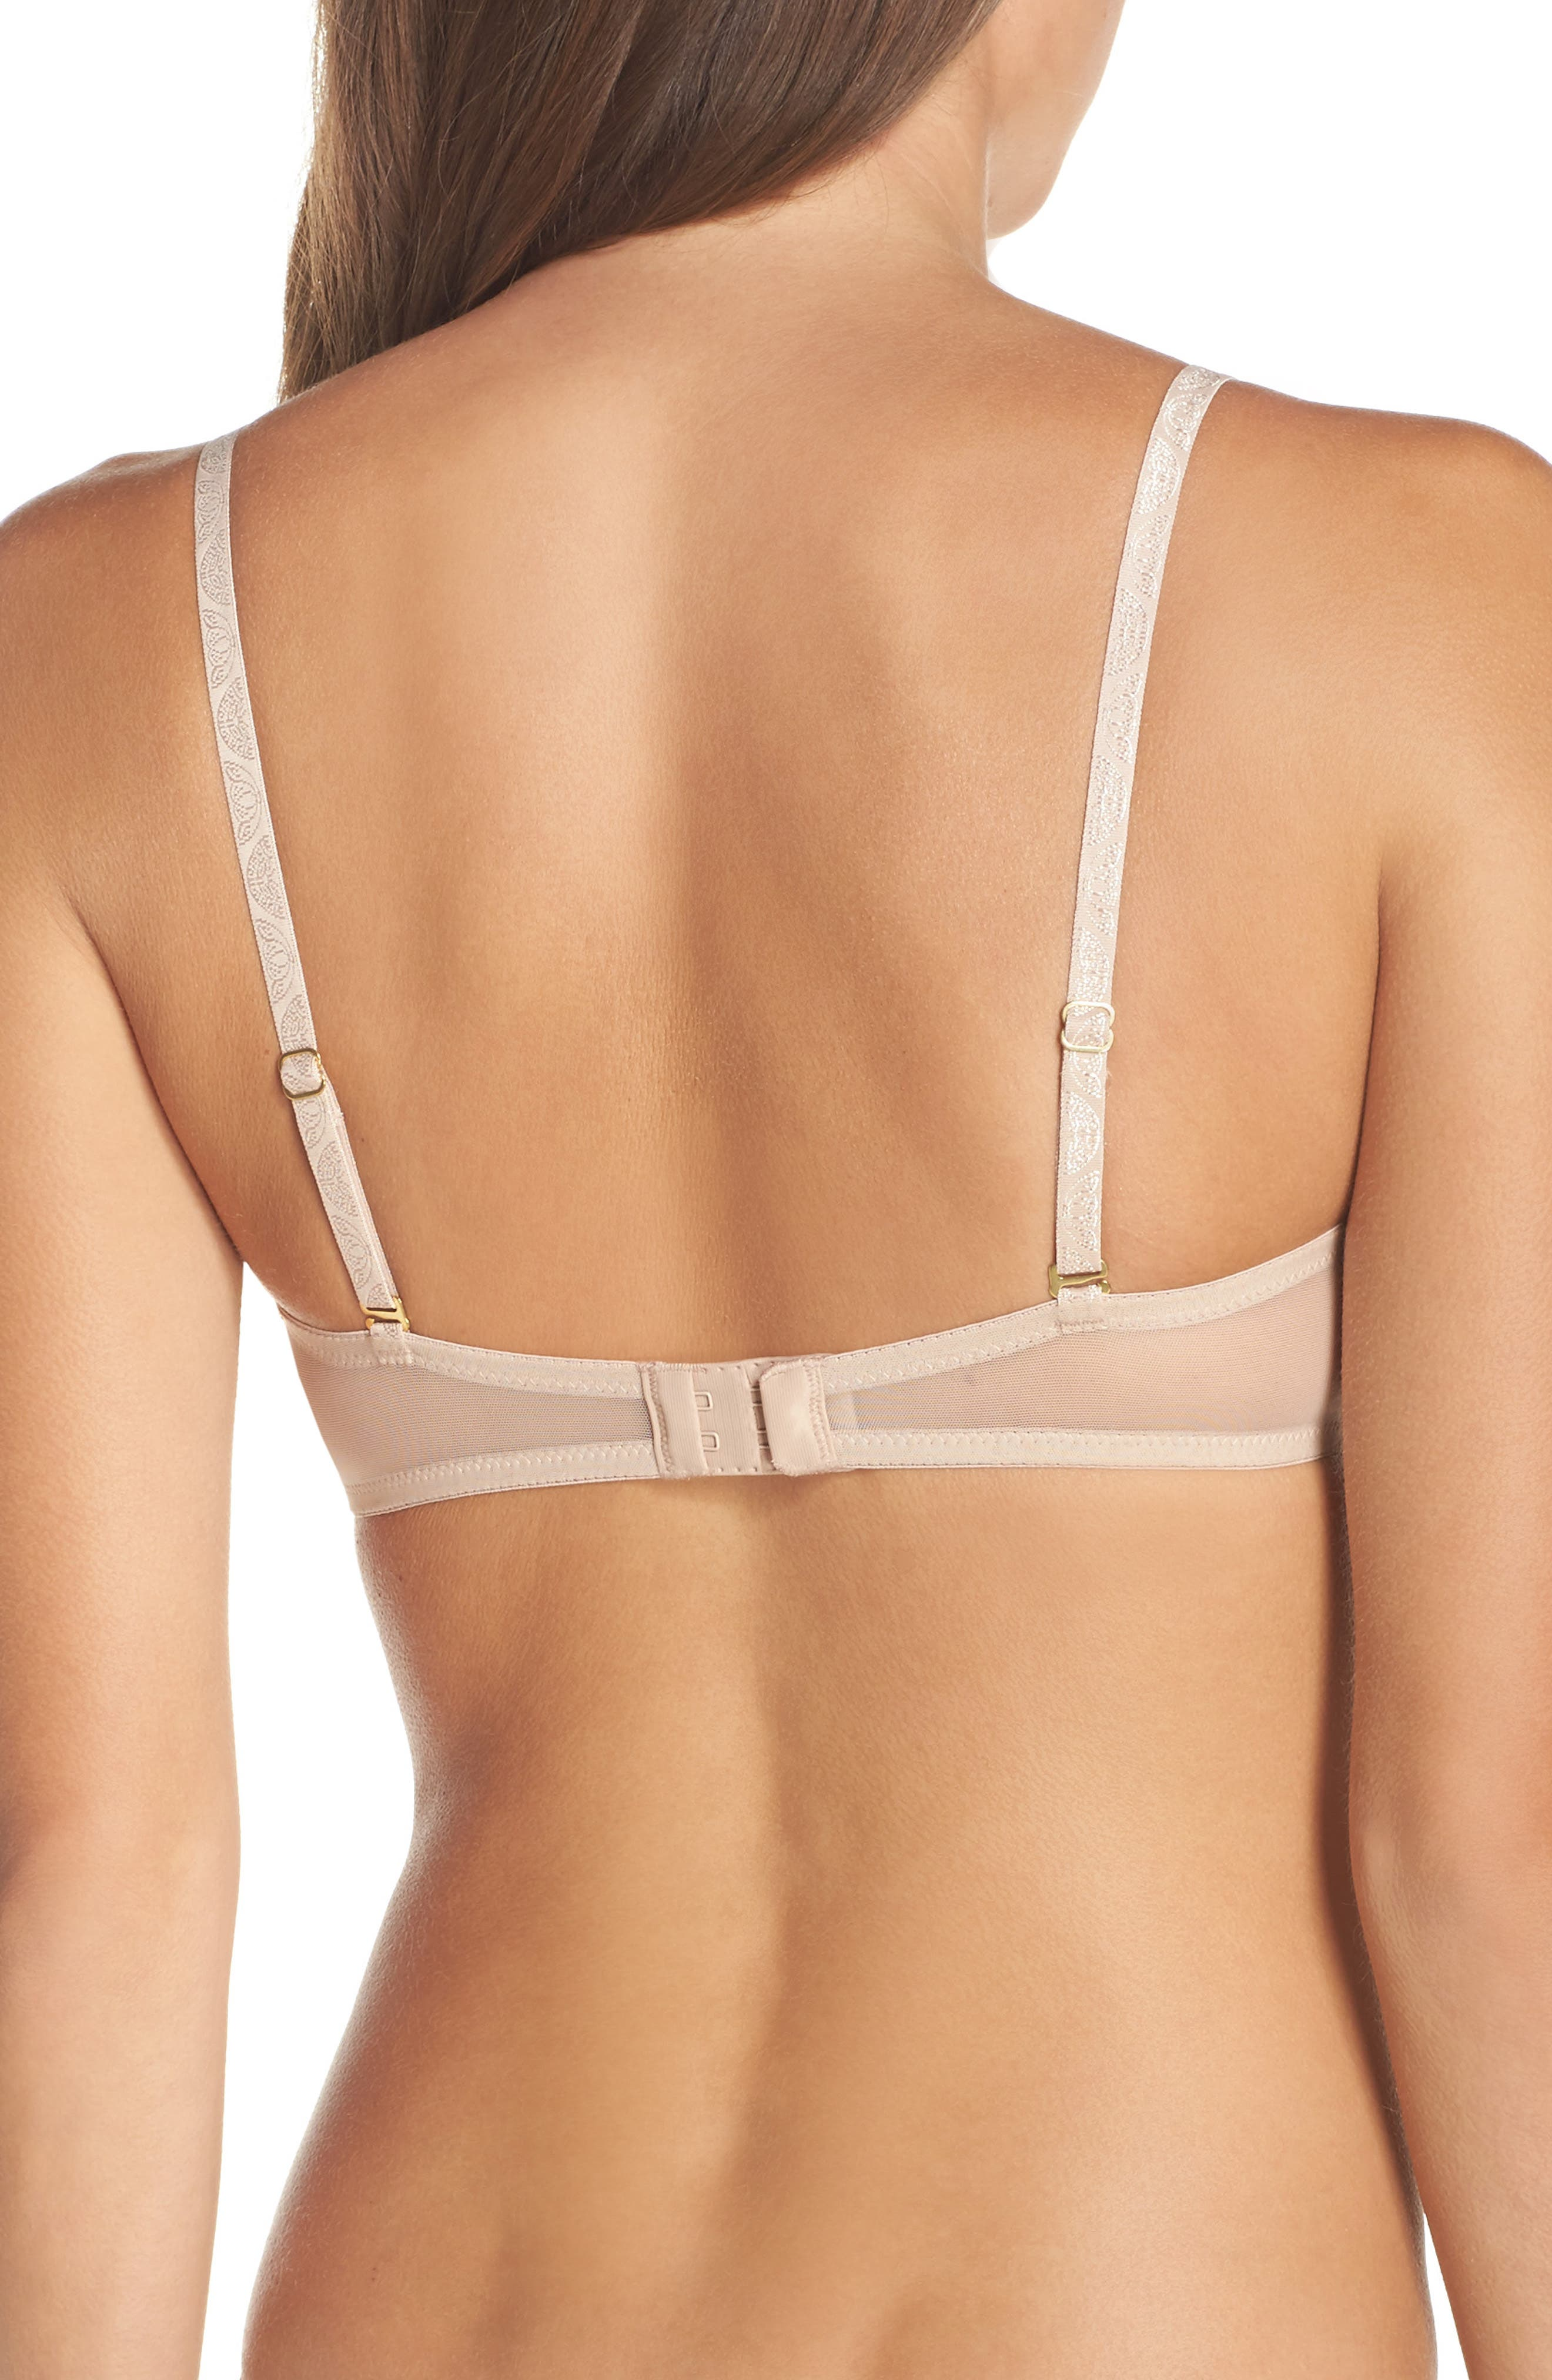 Alternate Image 2  - Natori Convertible Underwire Bra